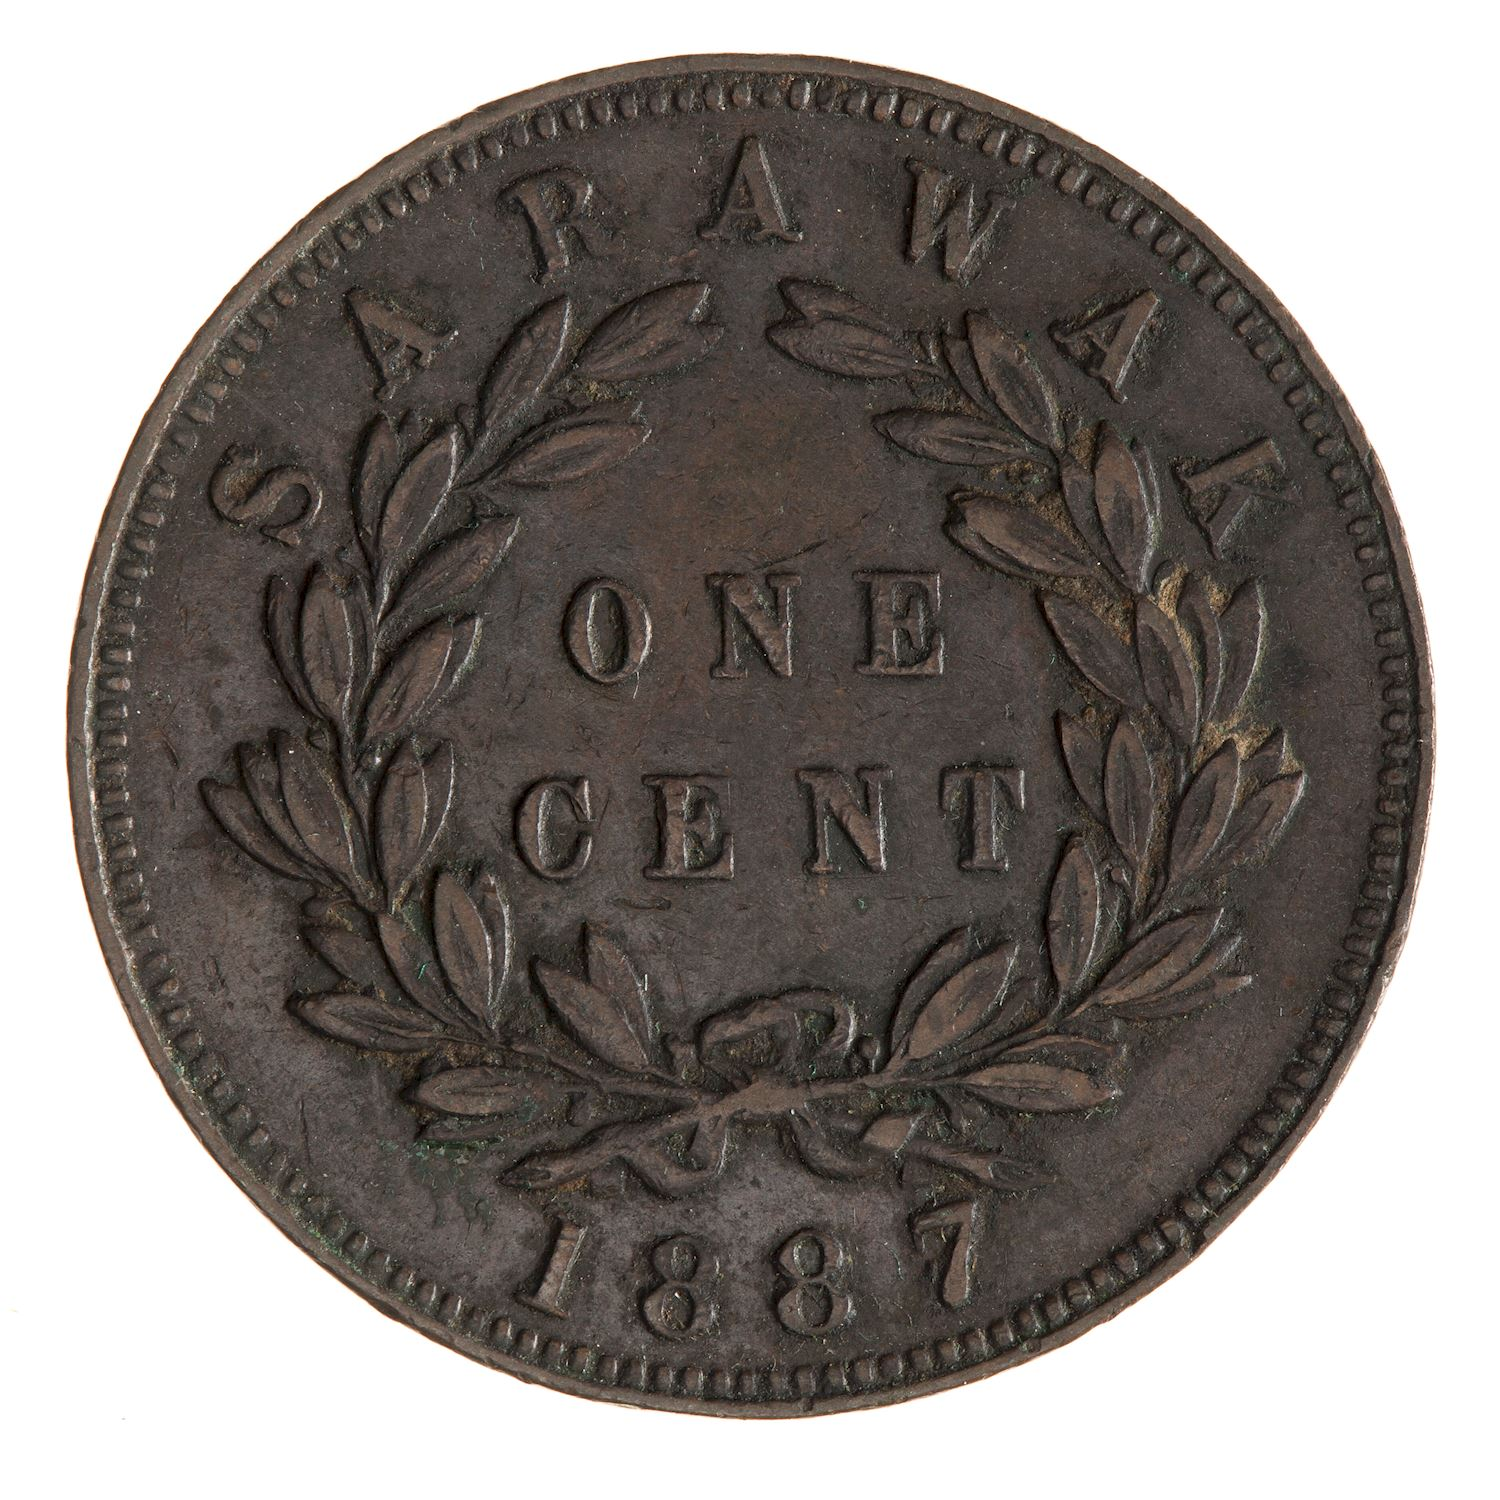 One Cent 1887: Photo Coin - 1 Cent, Sarawak, 1887